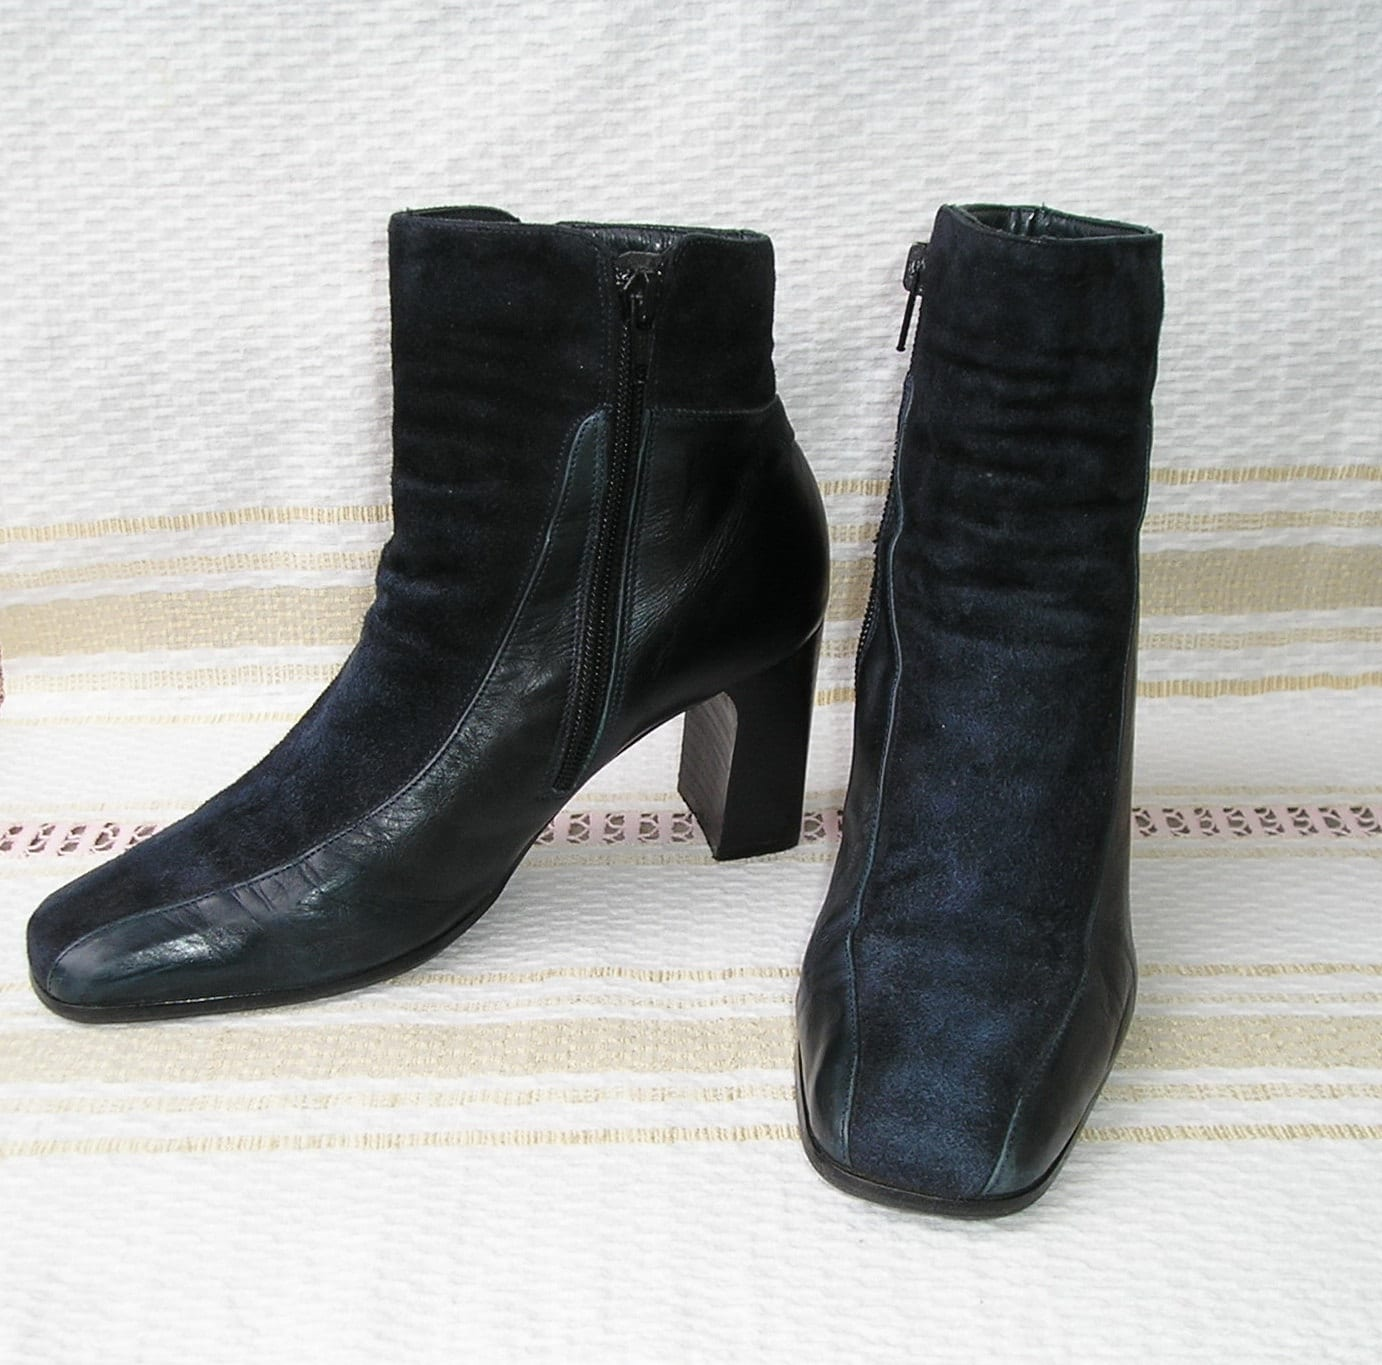 vintage navy blue leather ankle boots size 37 5 by